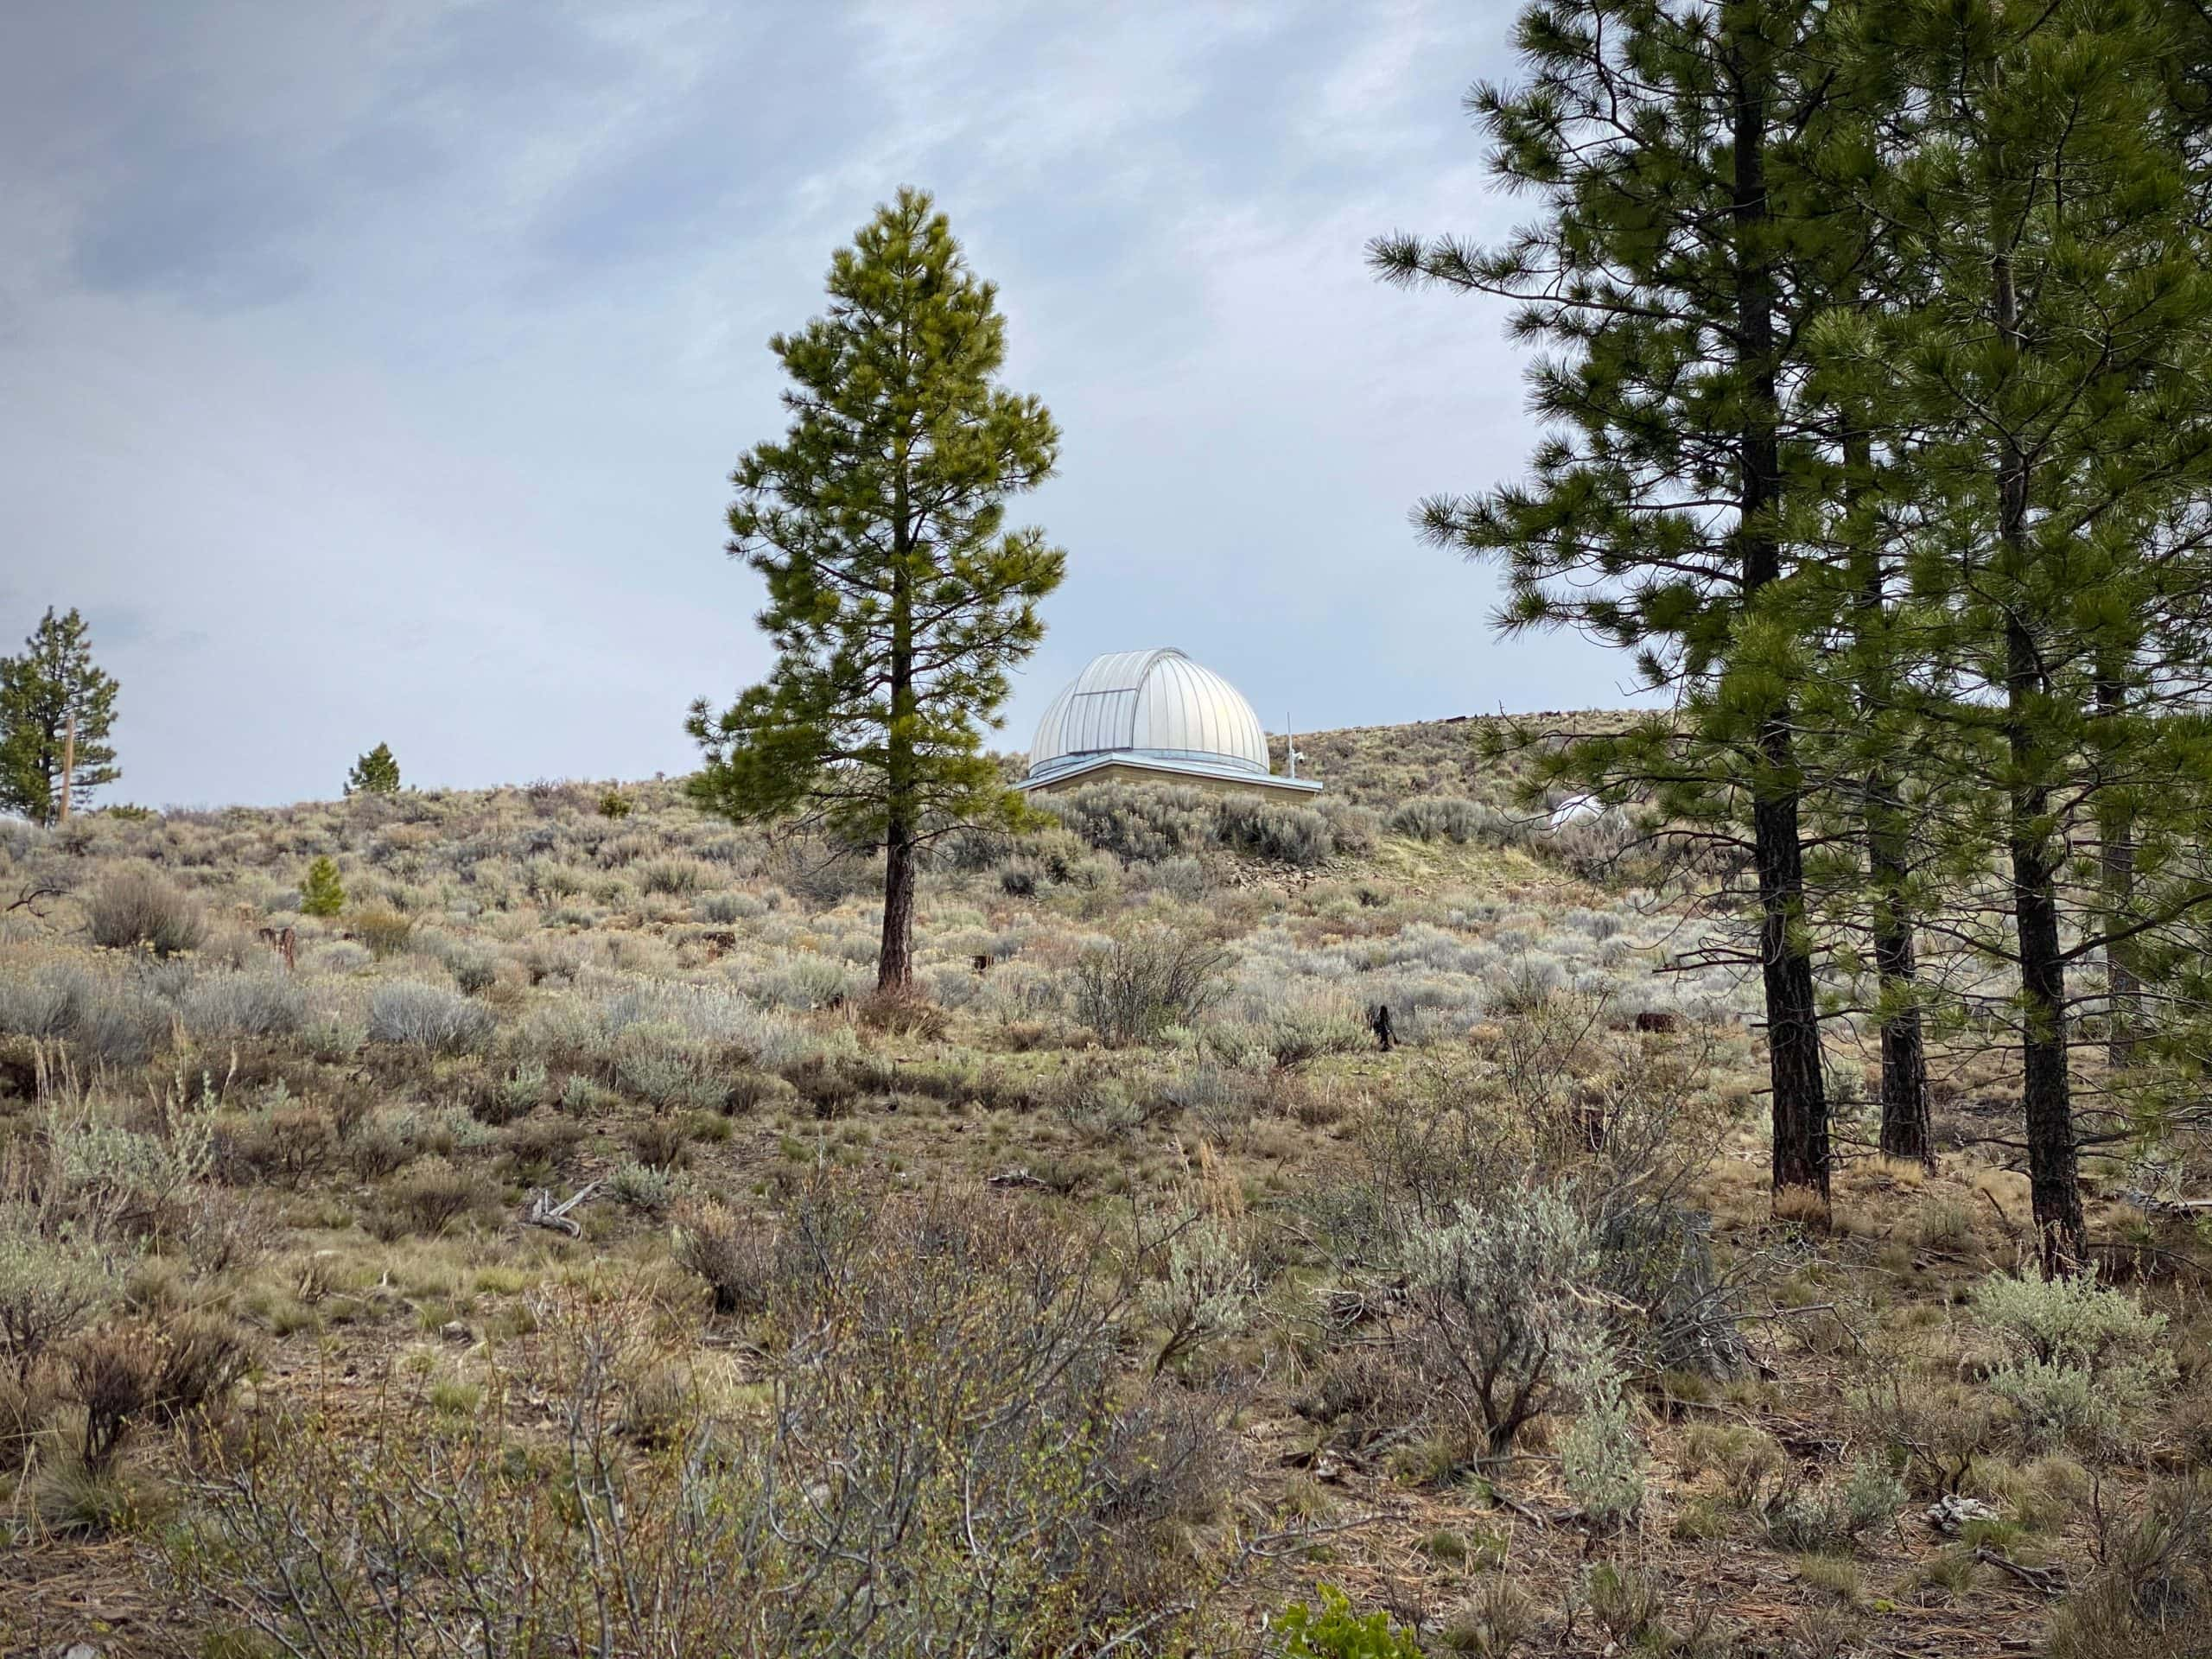 One of the observatory buildings on the top of Pine Mountain near Bend, Oregon.